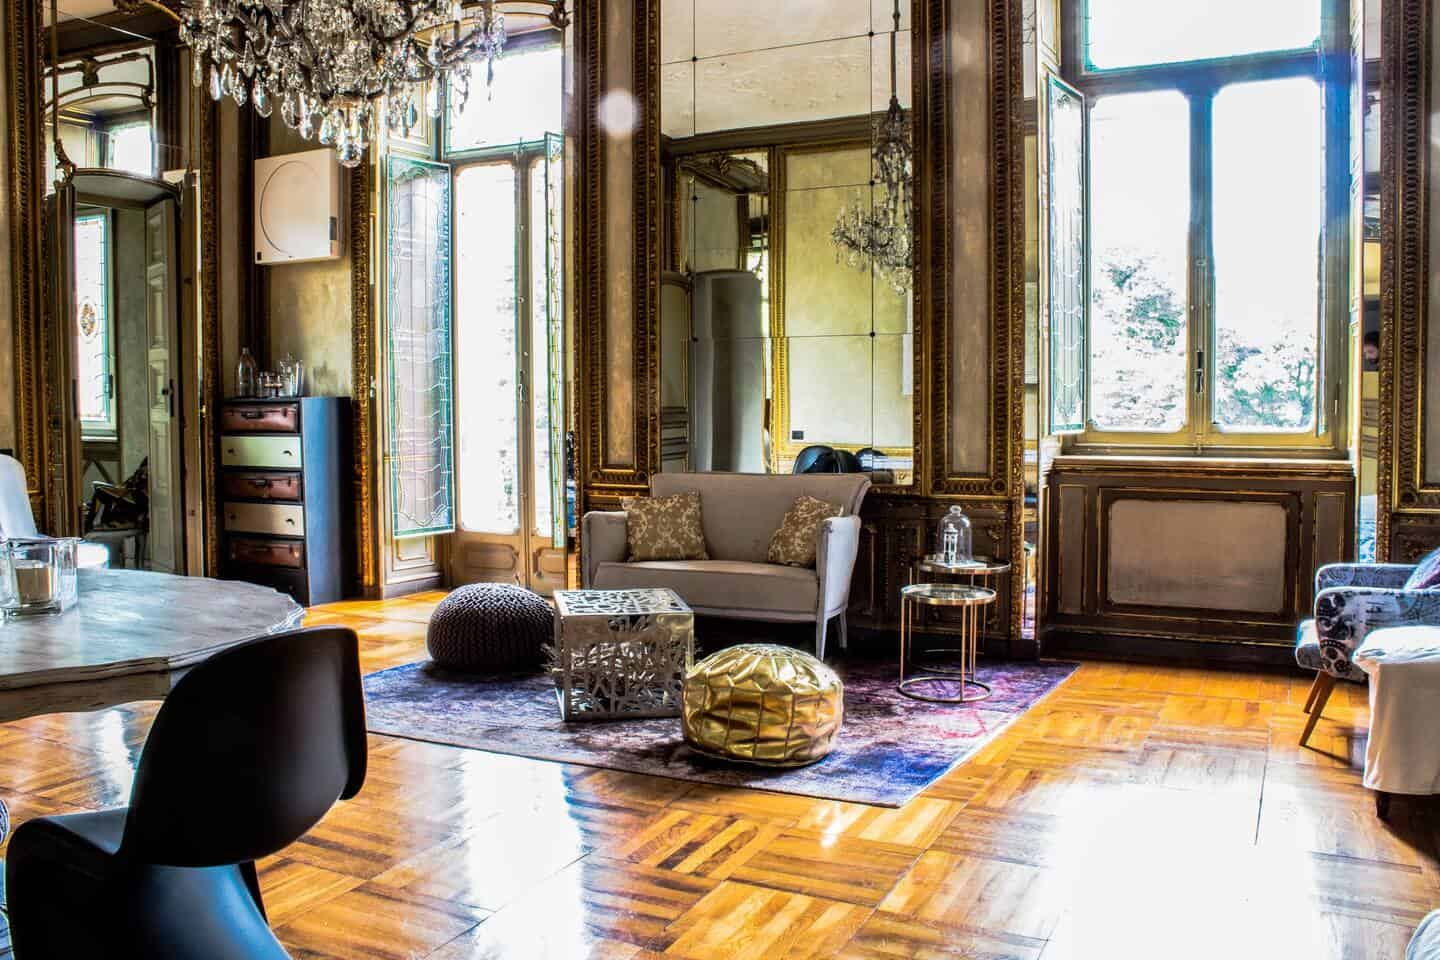 Image of Airbnb rental in Turin, Italy